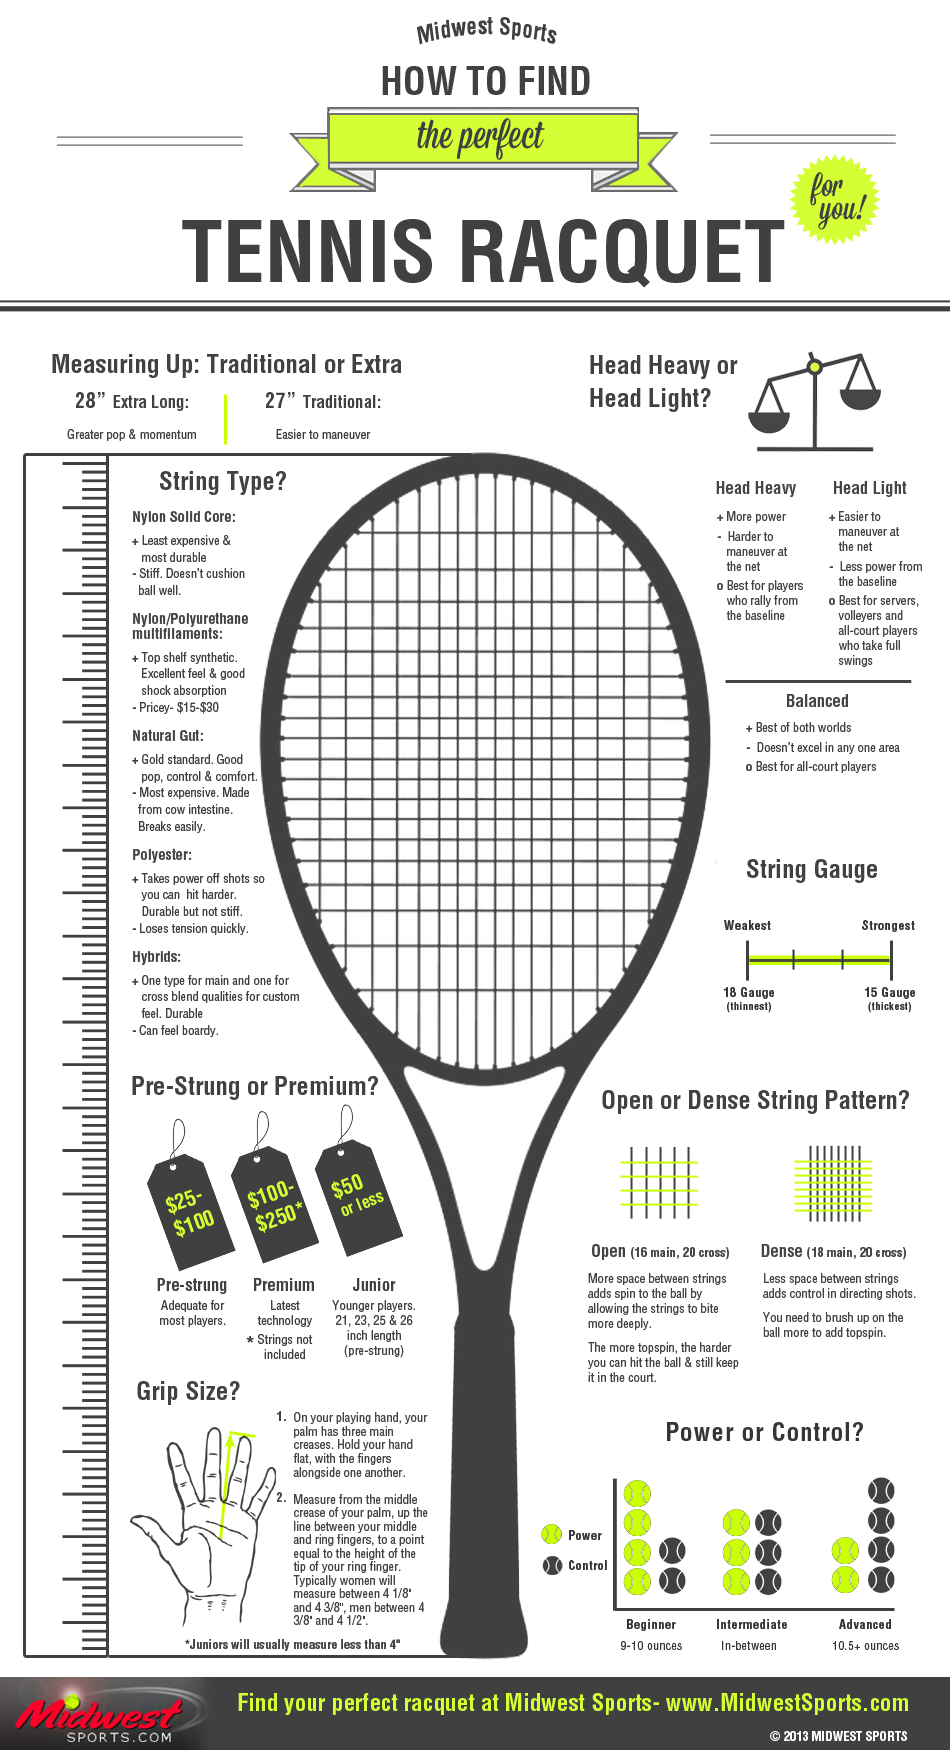 choosing-the-perfect-tennis-racquet-midwest-sports